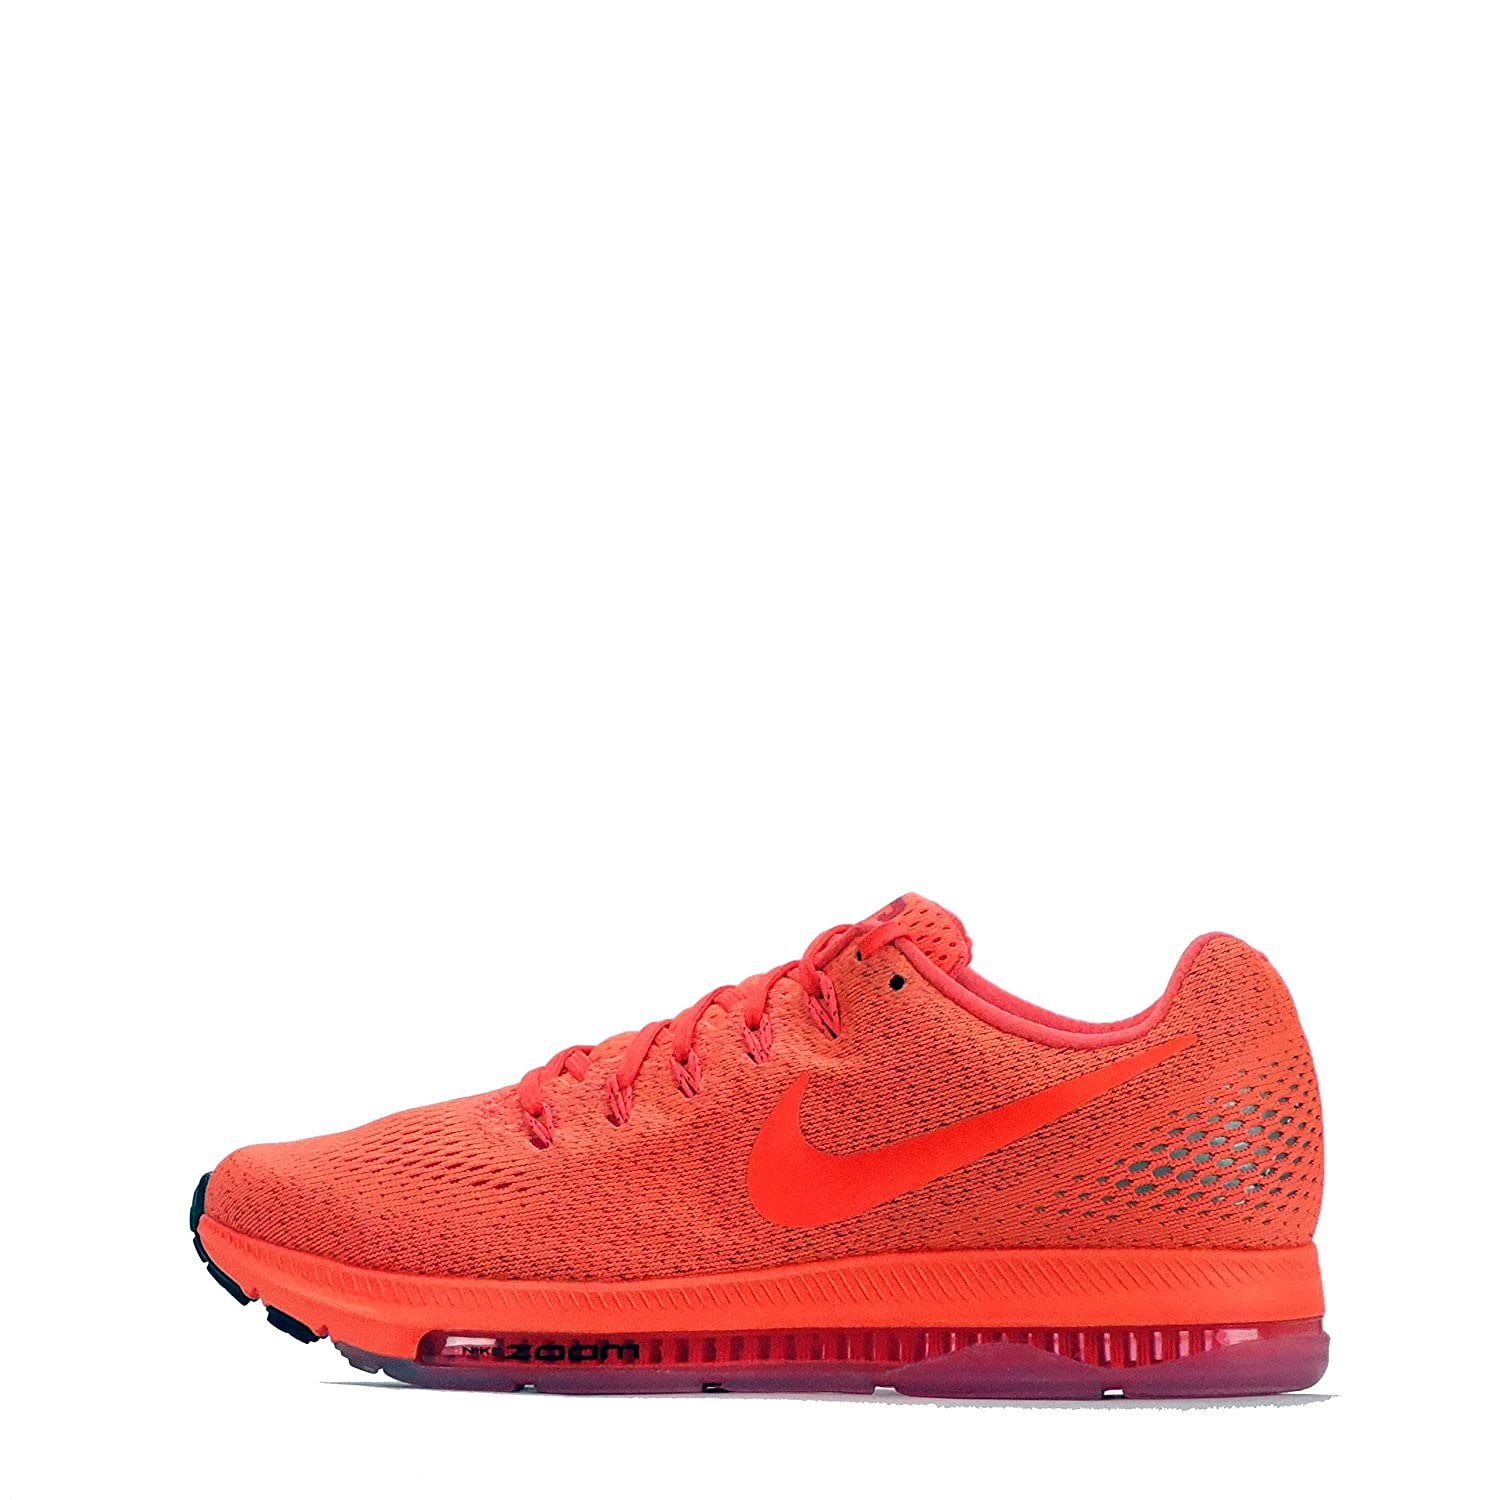 NIKE Zoom All Out Low Men's Running Sneaker B072M8LPQ6 12 D(M) US|Total Crimson / Total Crimson